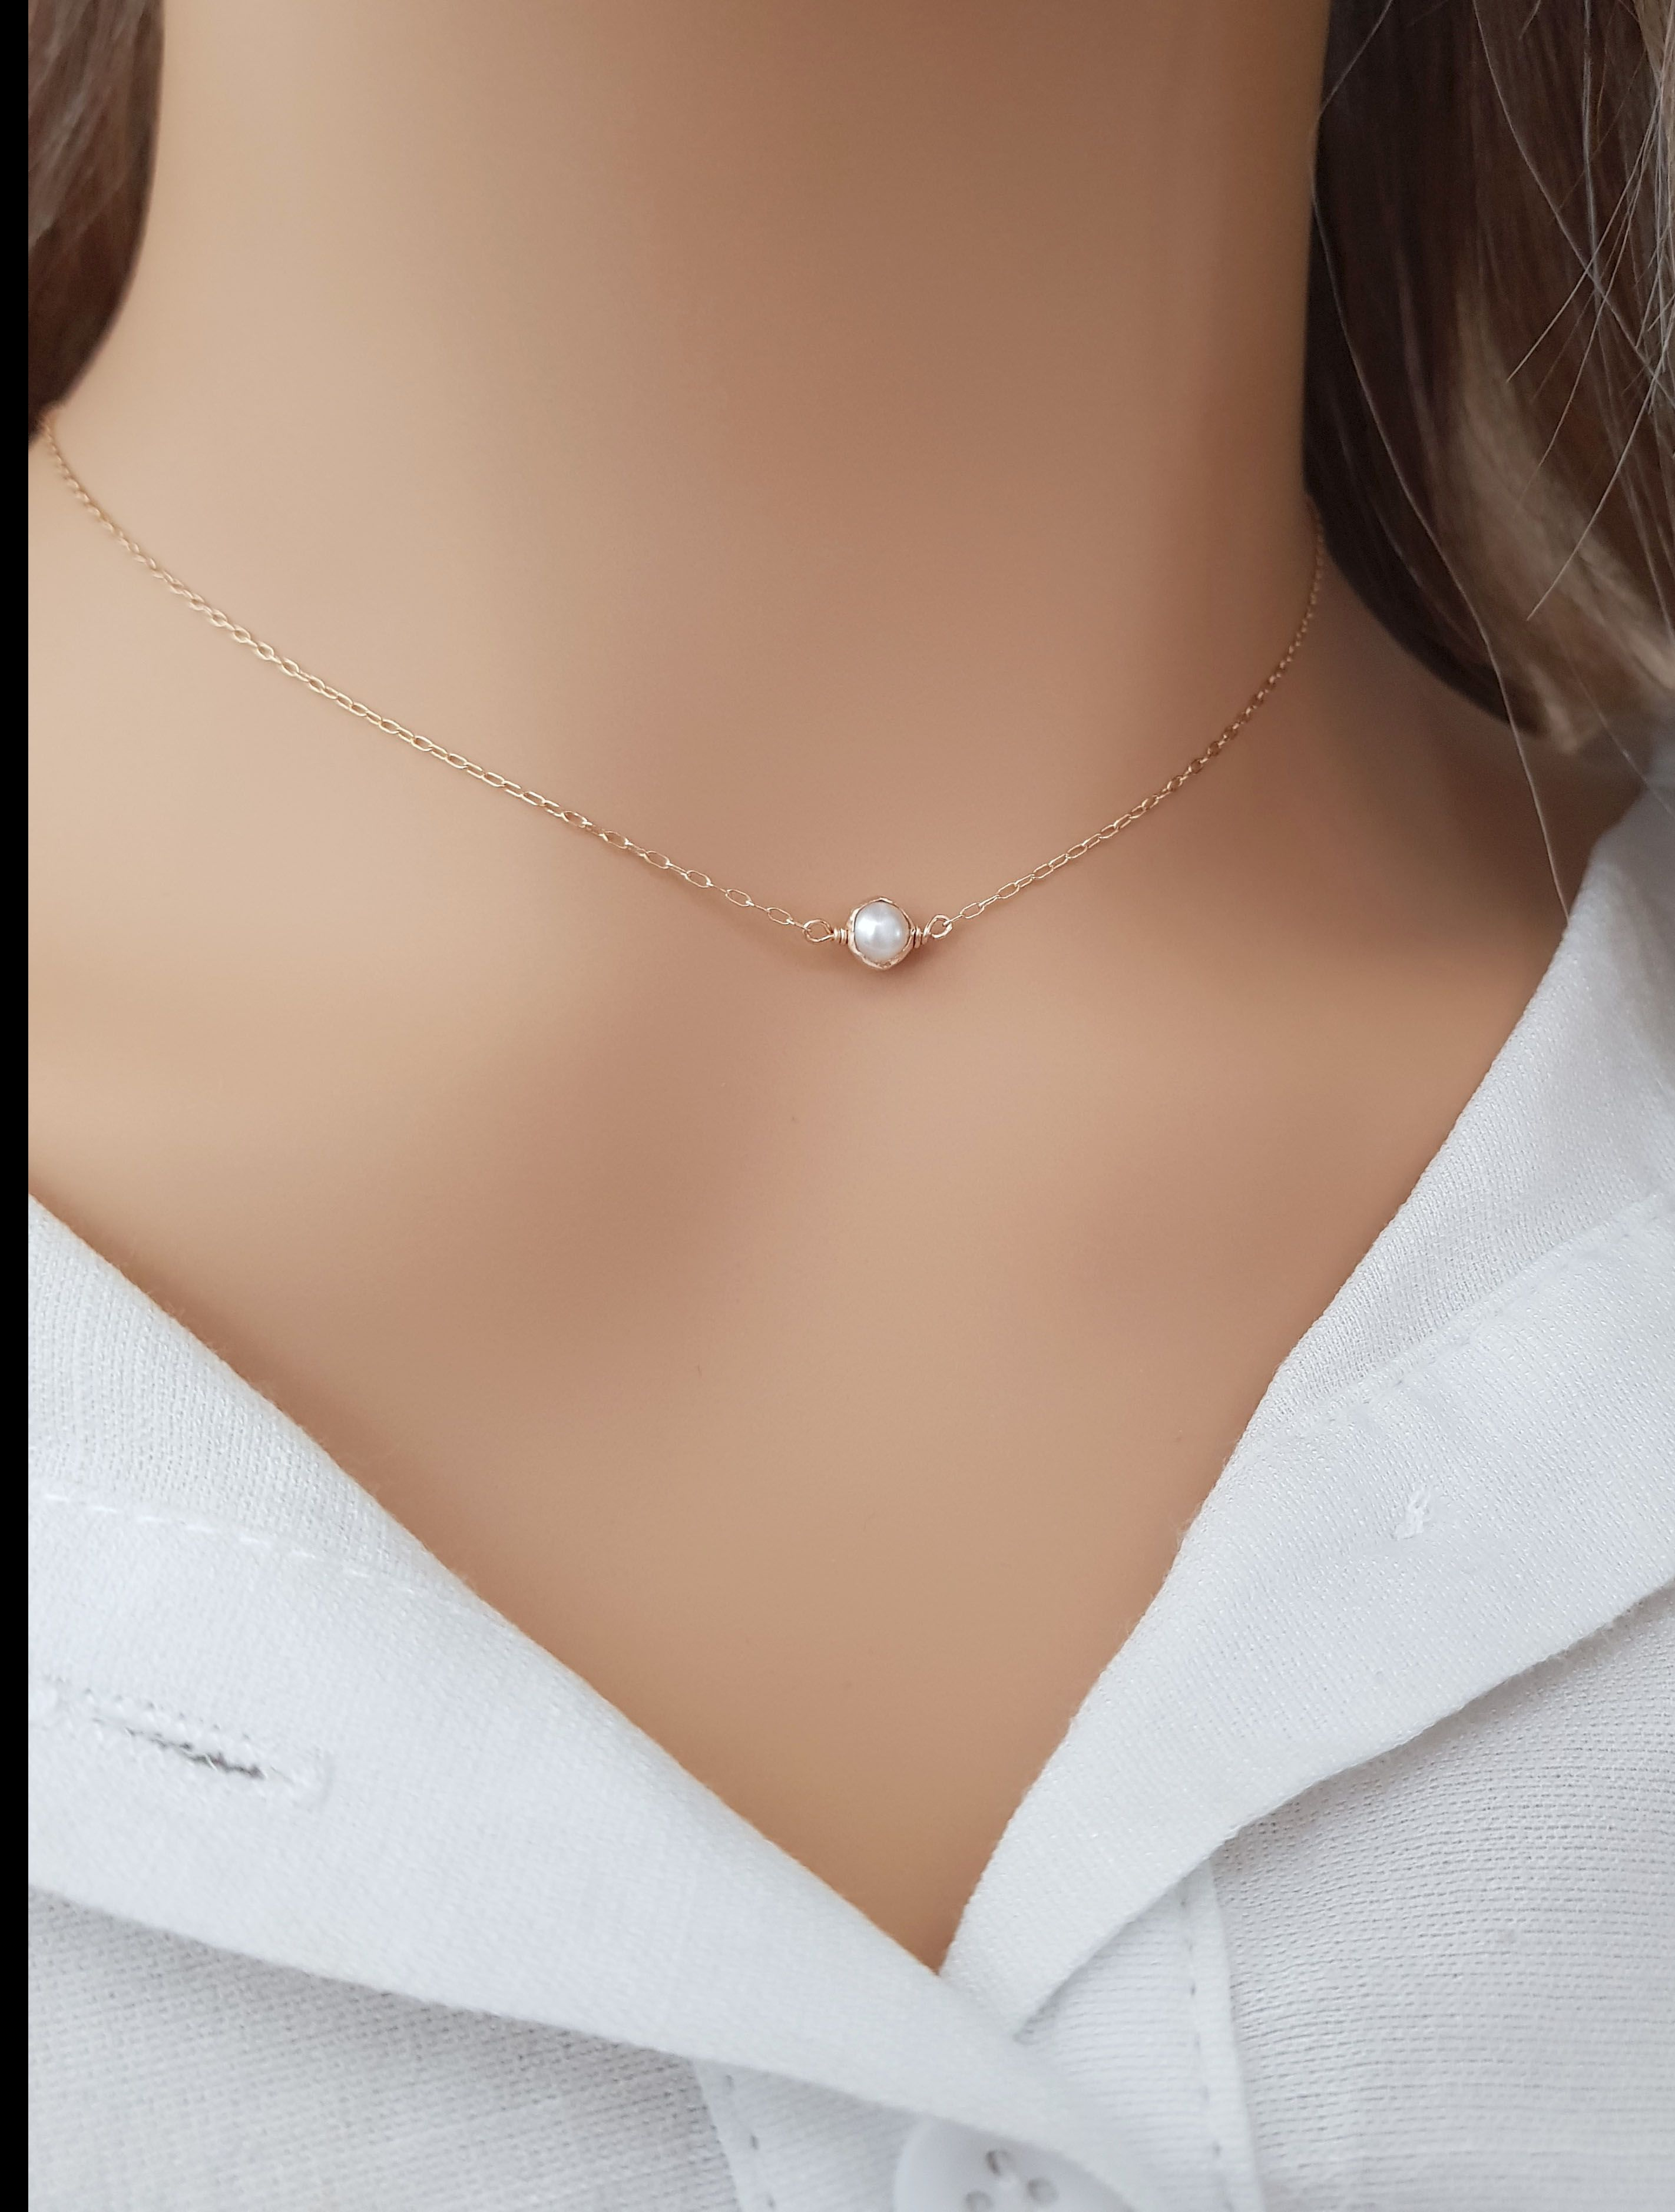 Photo of Simple Pearl Necklace, 14k Gold Filled Pearl Necklace, Single Pearl Necklace, Bridesmaid Necklace, Dainty Jewelry, Simple Necklace